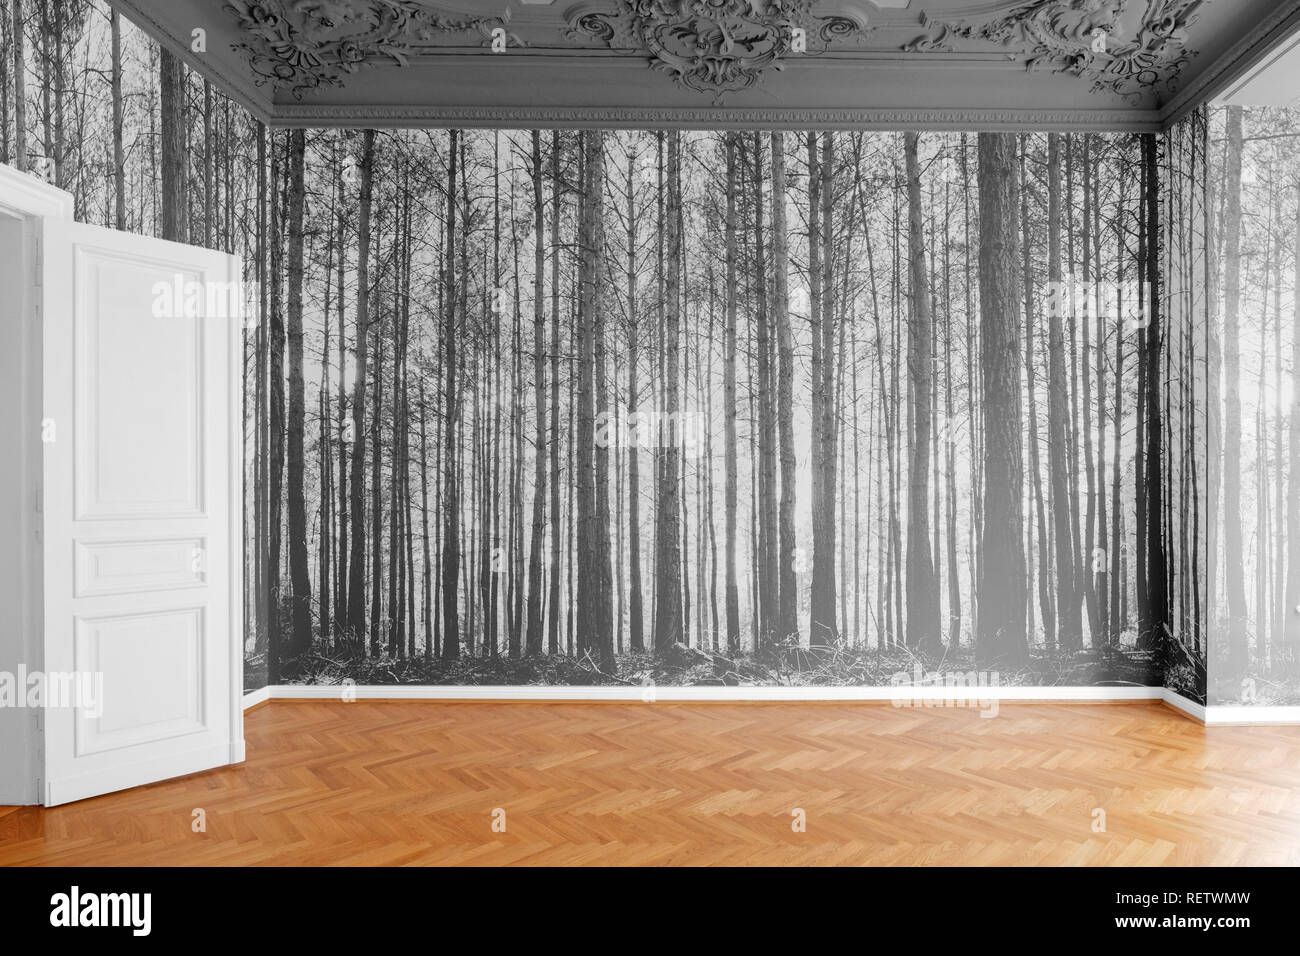 empty room with photo wallpaper with  forest landscape photography - Stock Image